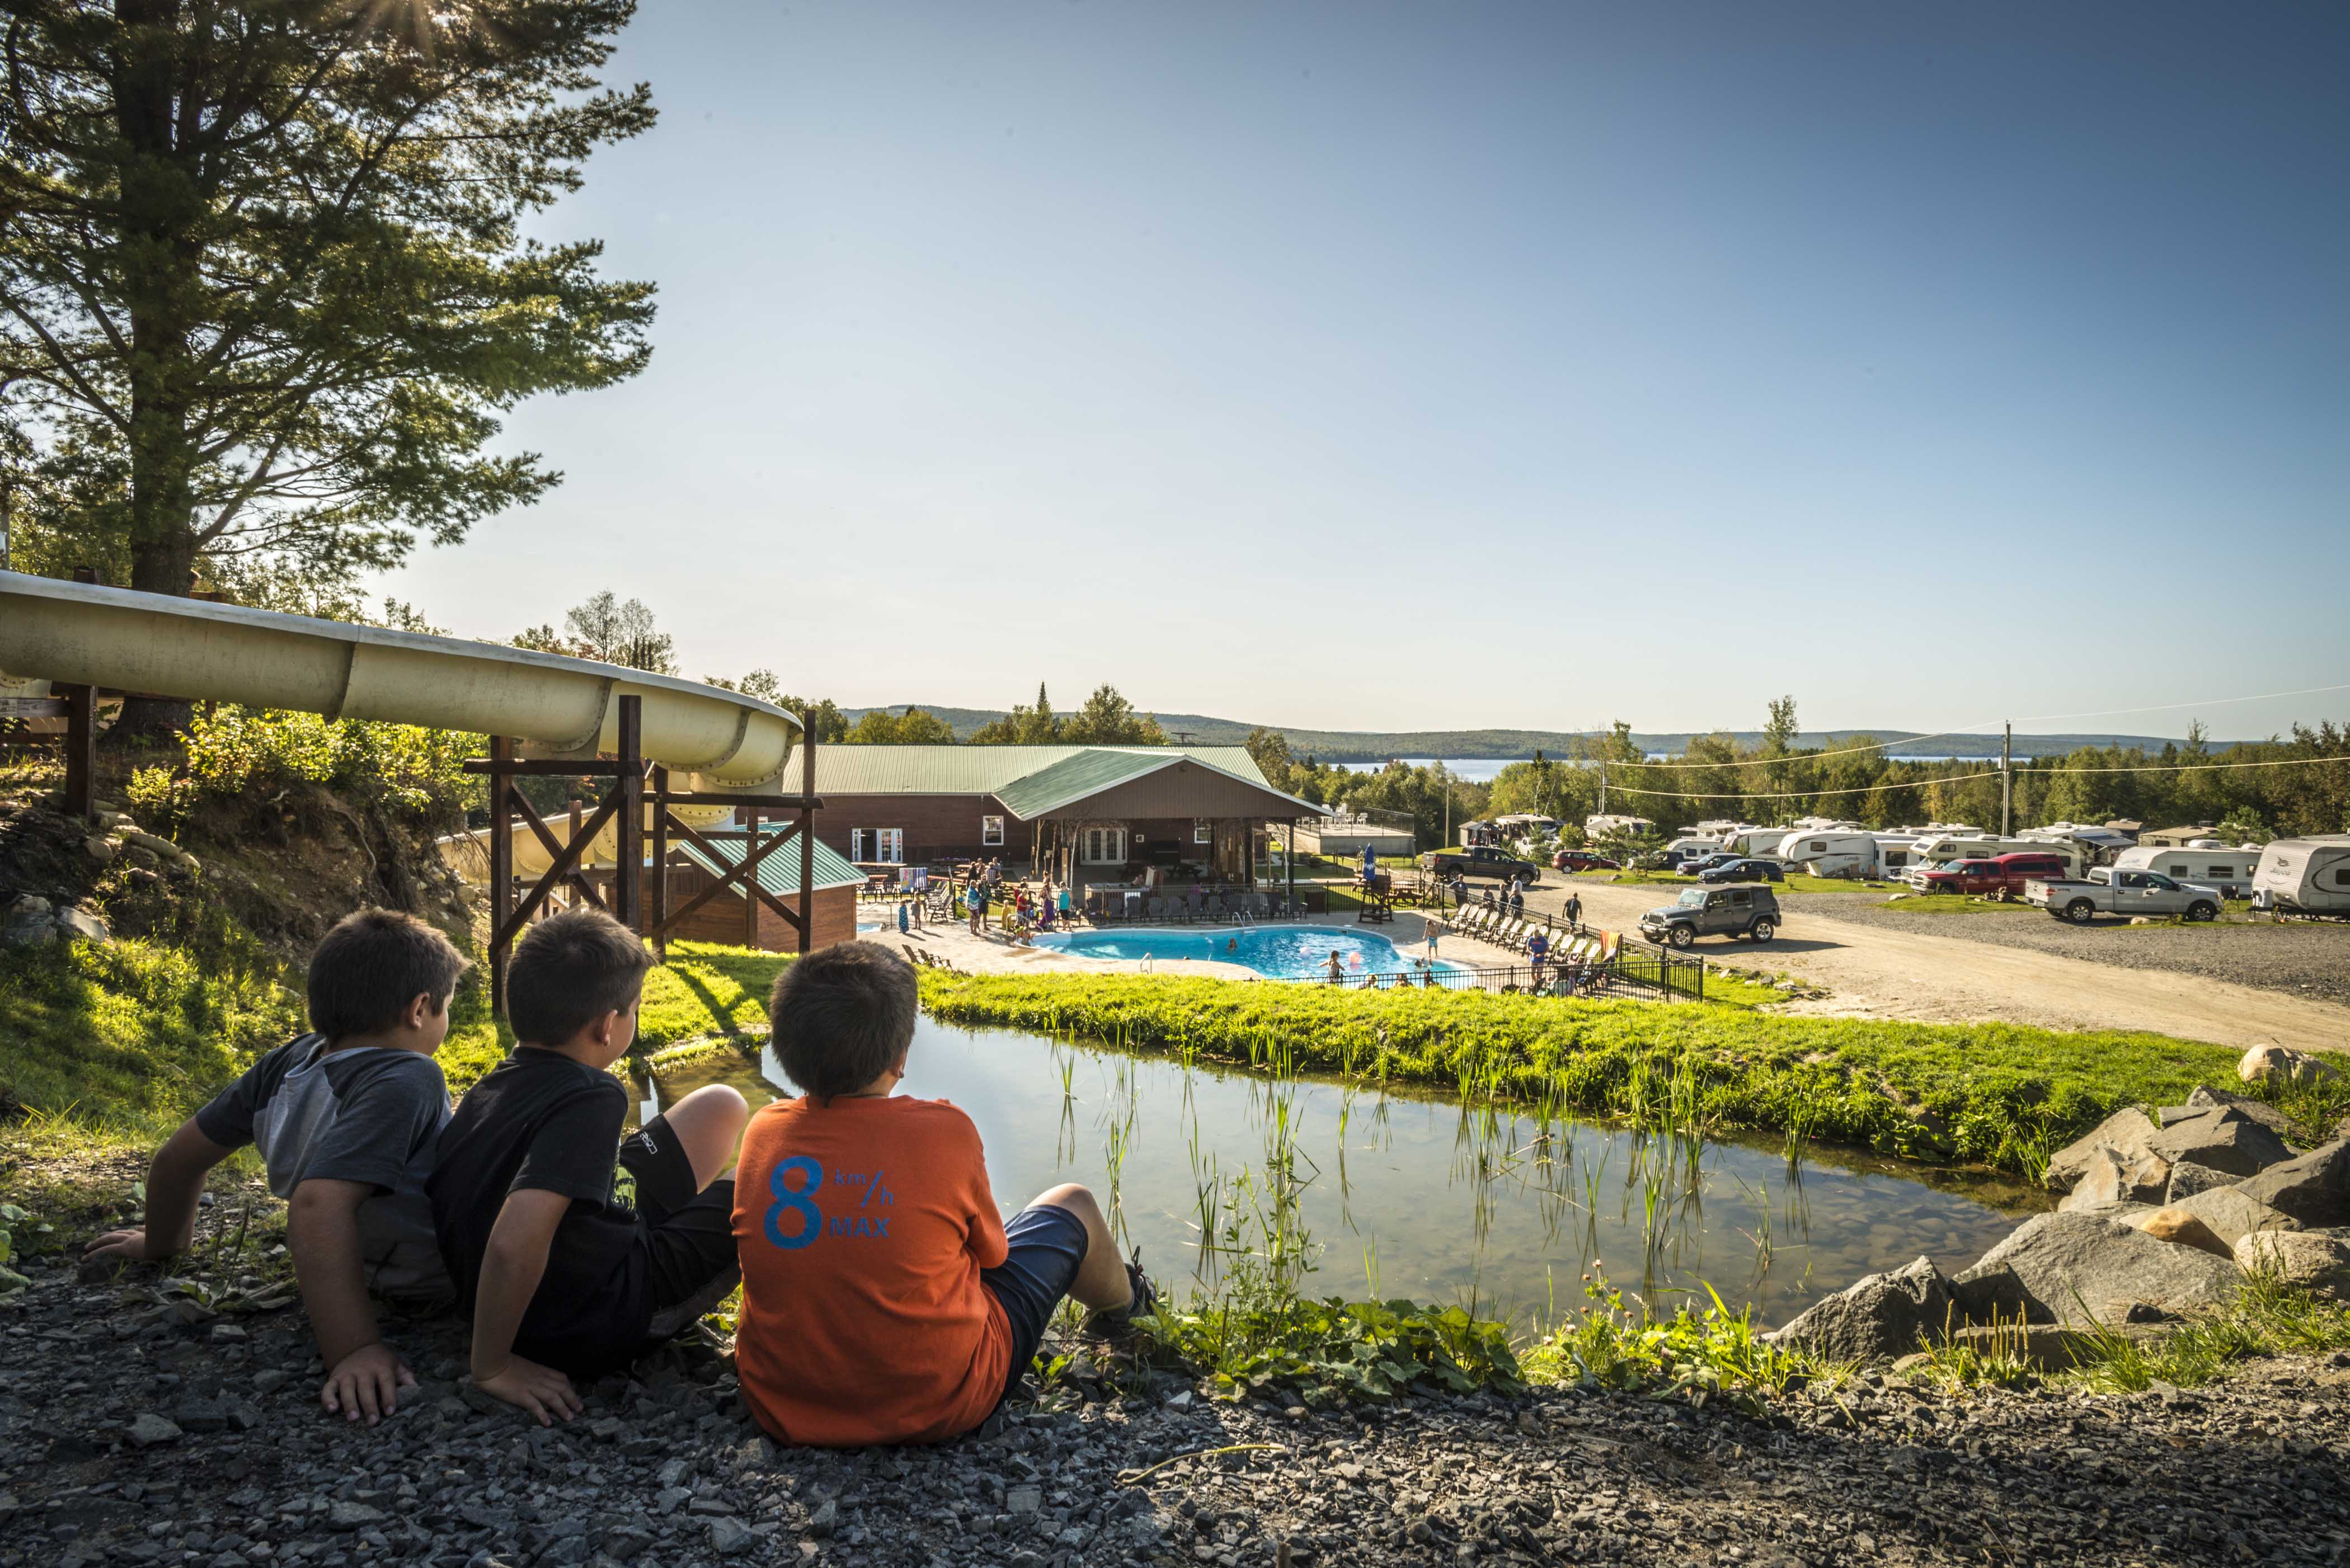 77766panorama-camping-aventure-photo-couverture.jpg